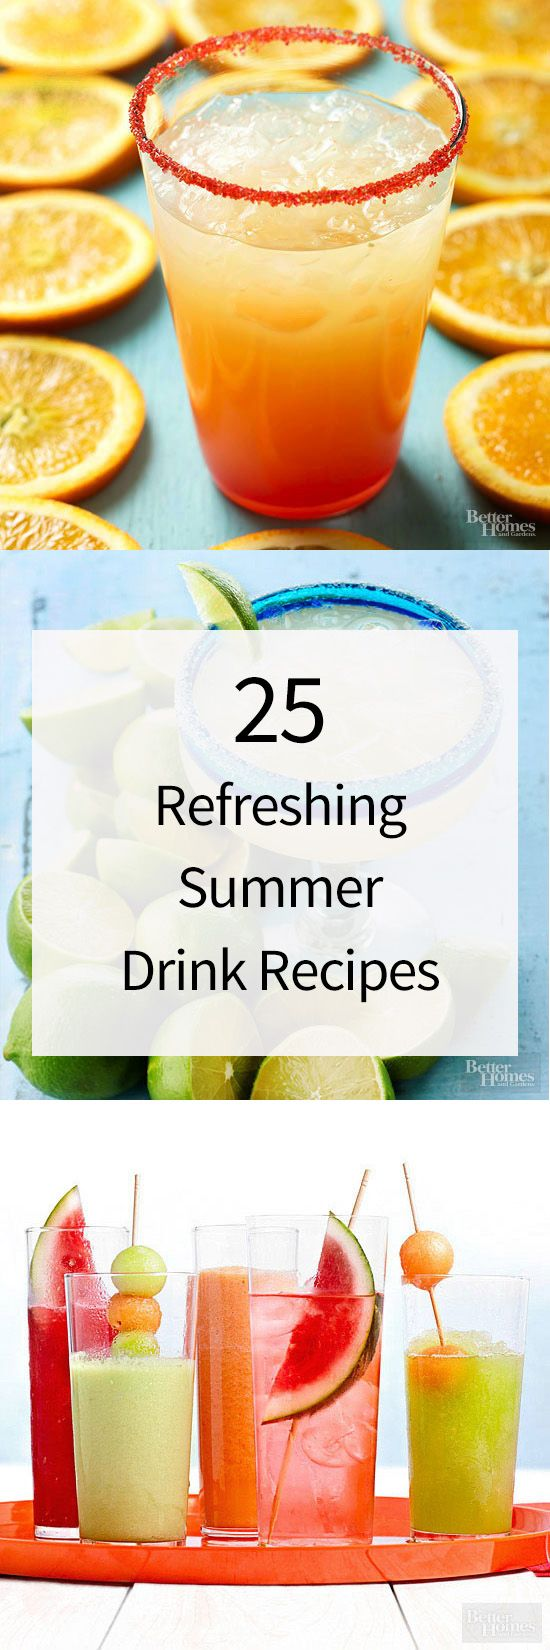 17 best images about ice drinks on pinterest vodka slush for Refreshing drink recipes non alcoholic